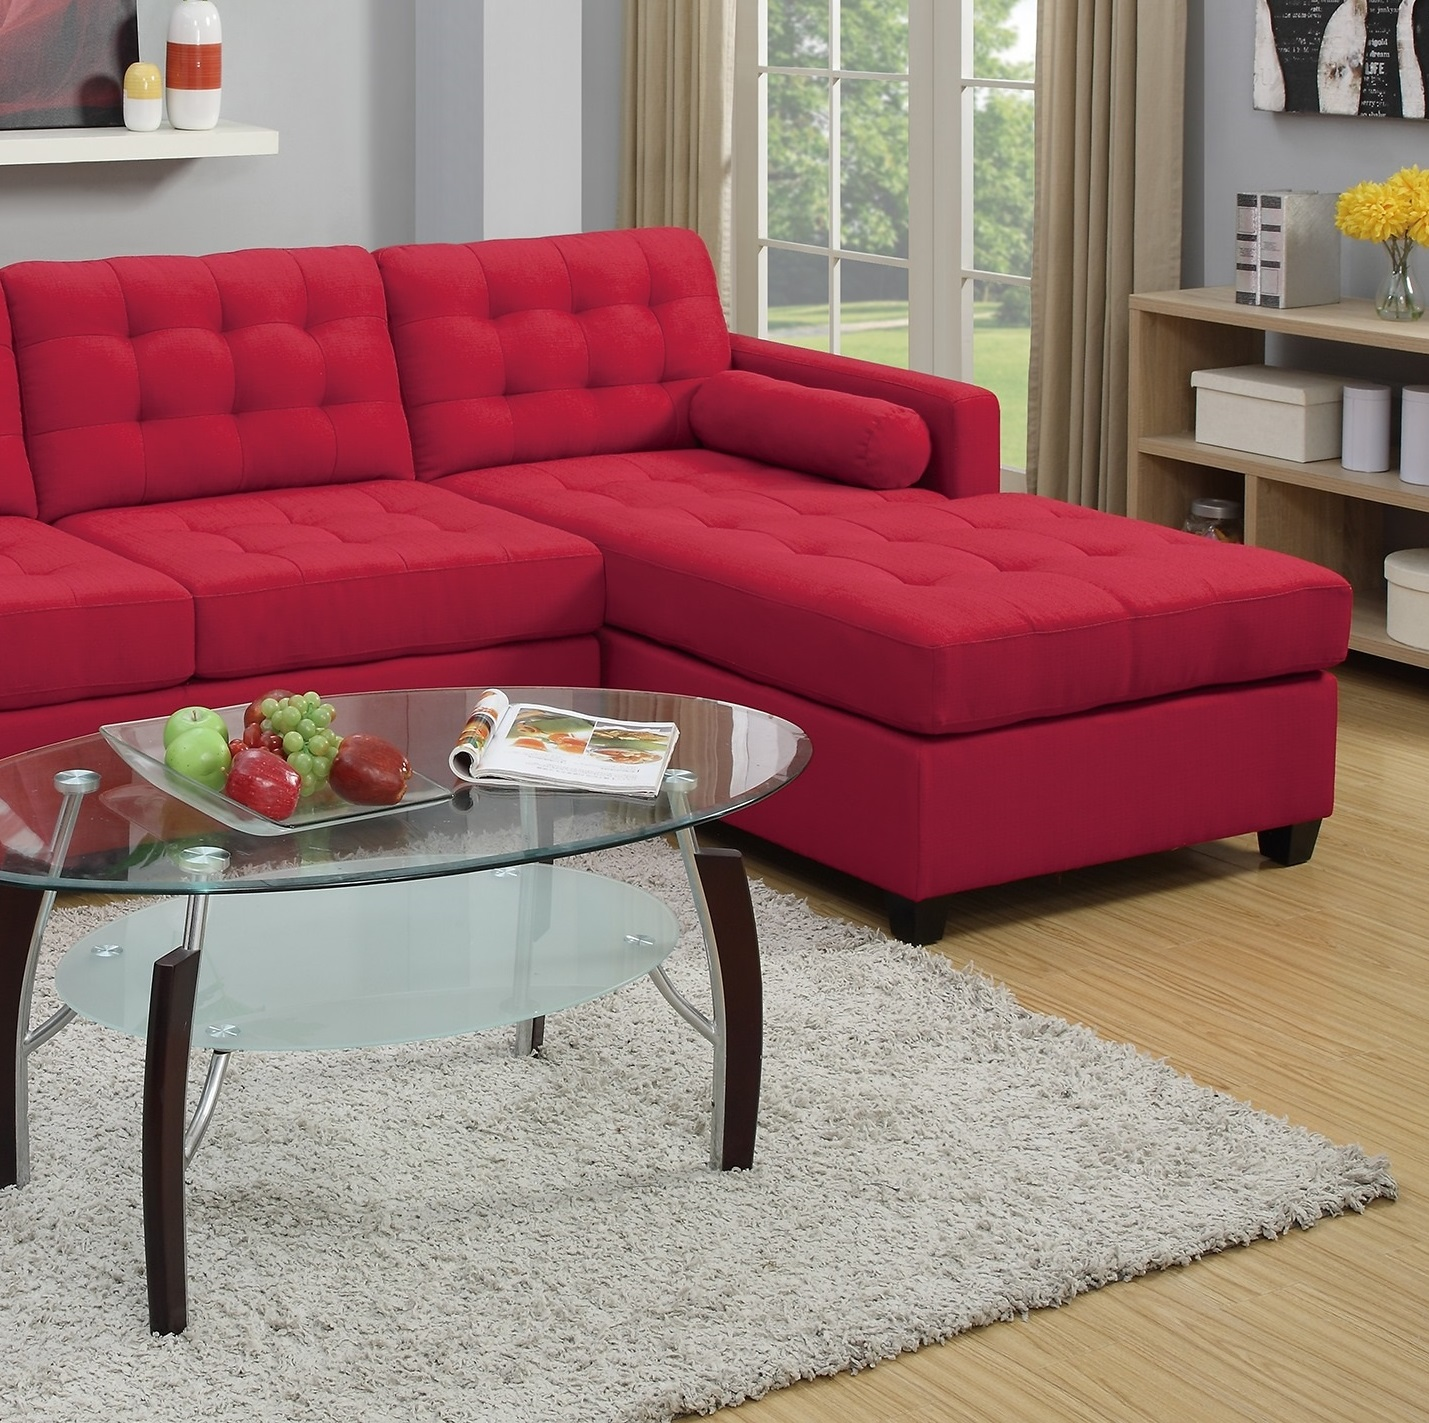 Awesome Living Room Furniture Modern 2Pcs Sectional Sofa Set Carmine Polyfiber 2 Seat Sofa Reversible L R Chaise Inzonedesignstudio Interior Chair Design Inzonedesignstudiocom